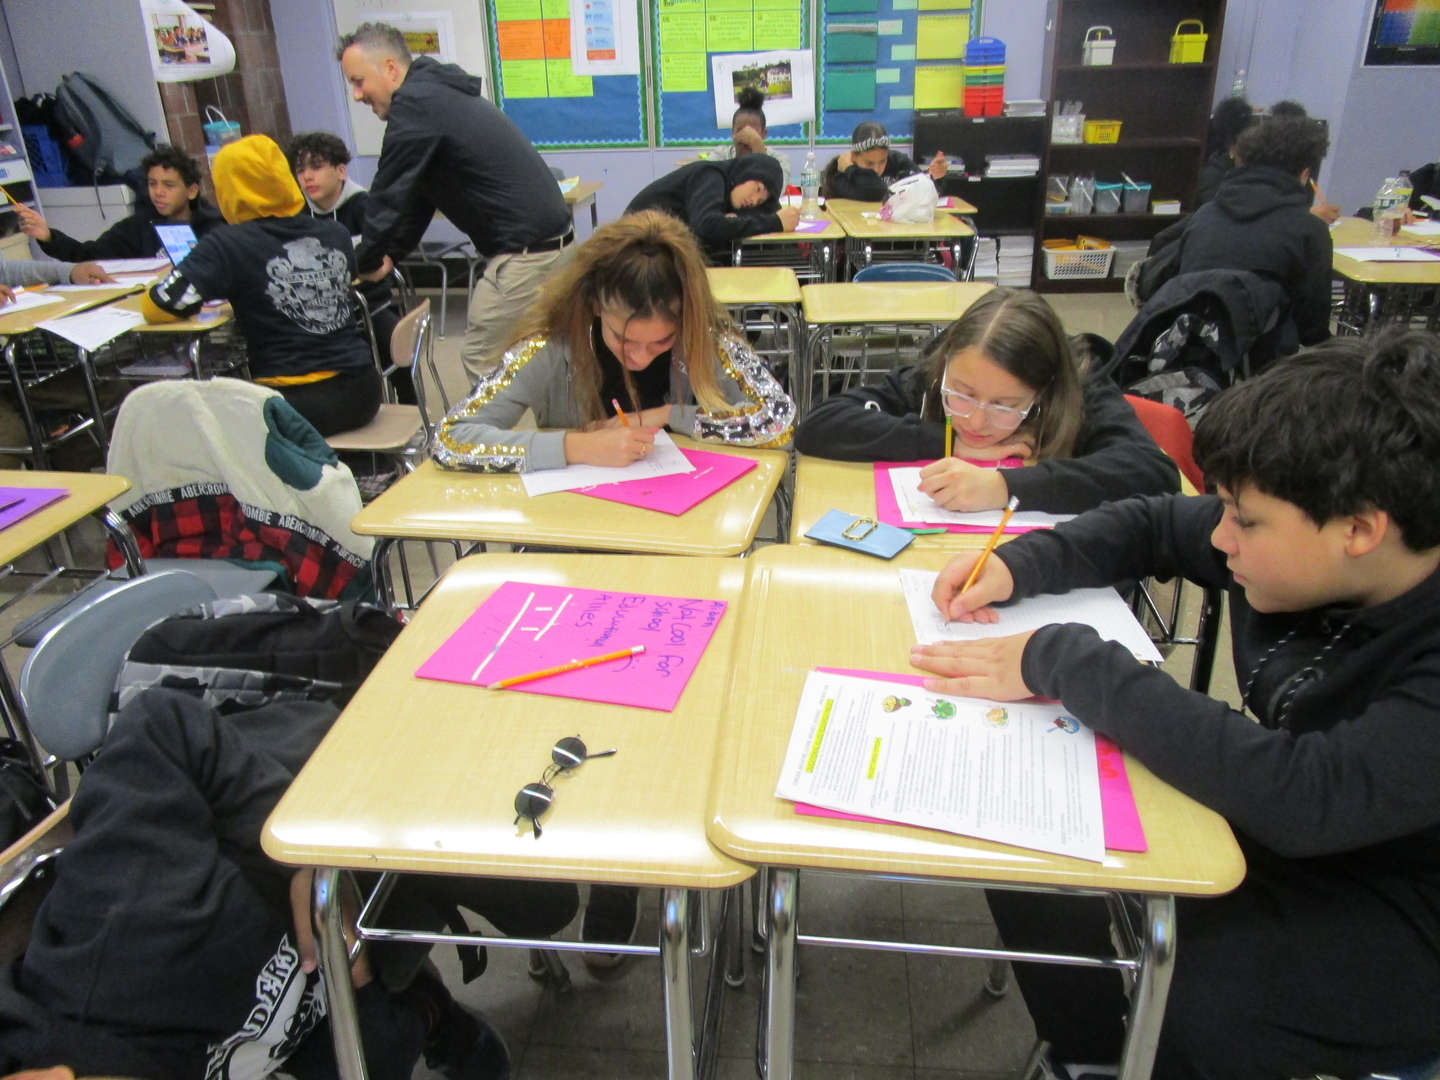 Students working together on a class assignment.